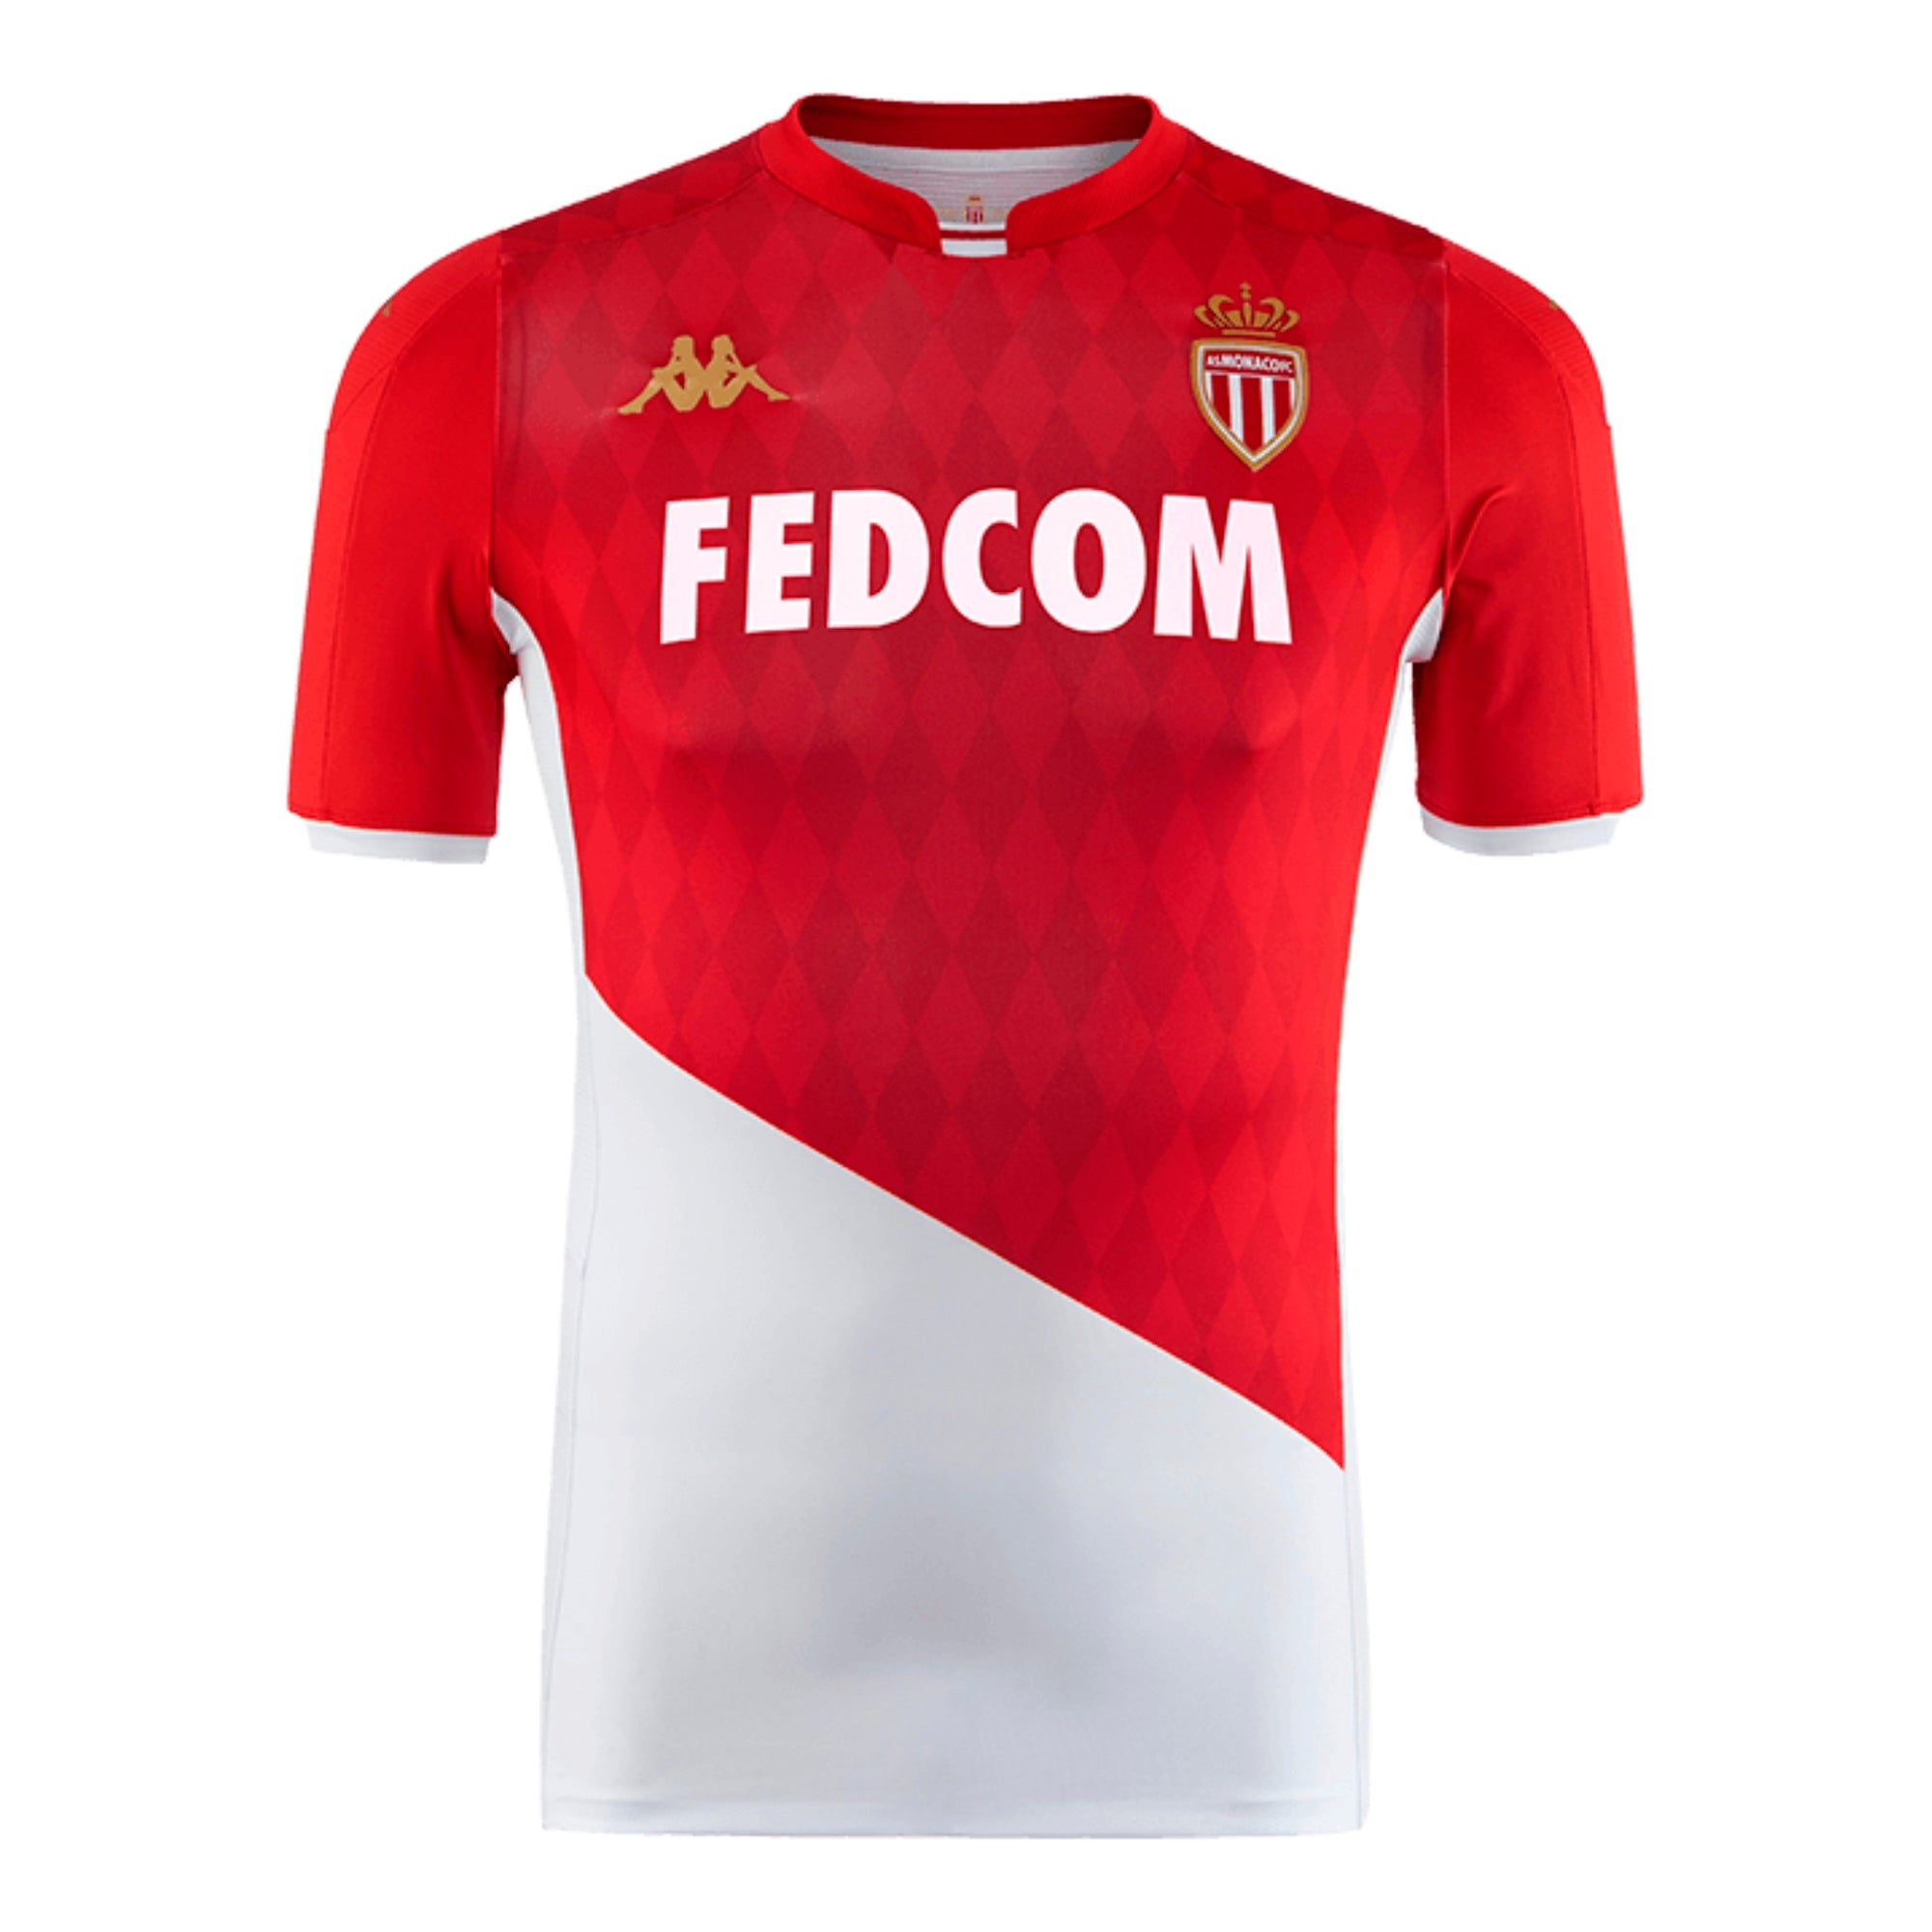 AS Monaco Professional level home shirt in short sleeve. Red top with white bottom and FEDCOM white sponsor logo on the chest.